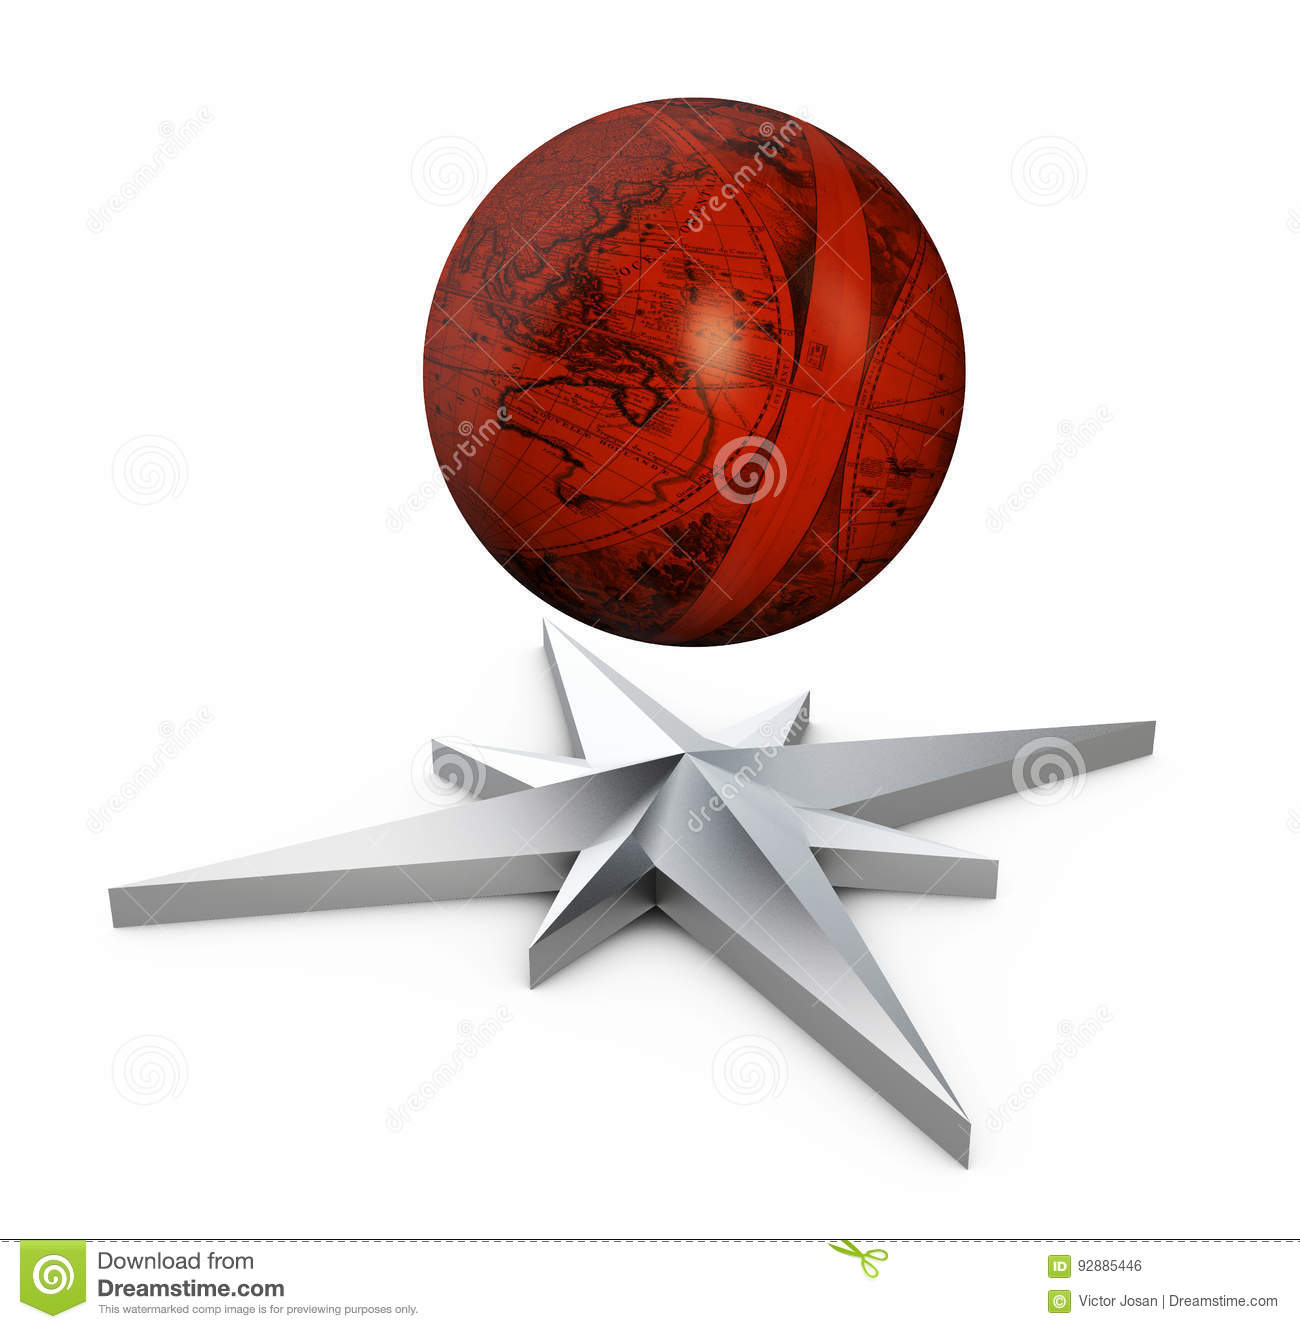 3d illustration of wind rose and medieval globe  isolated